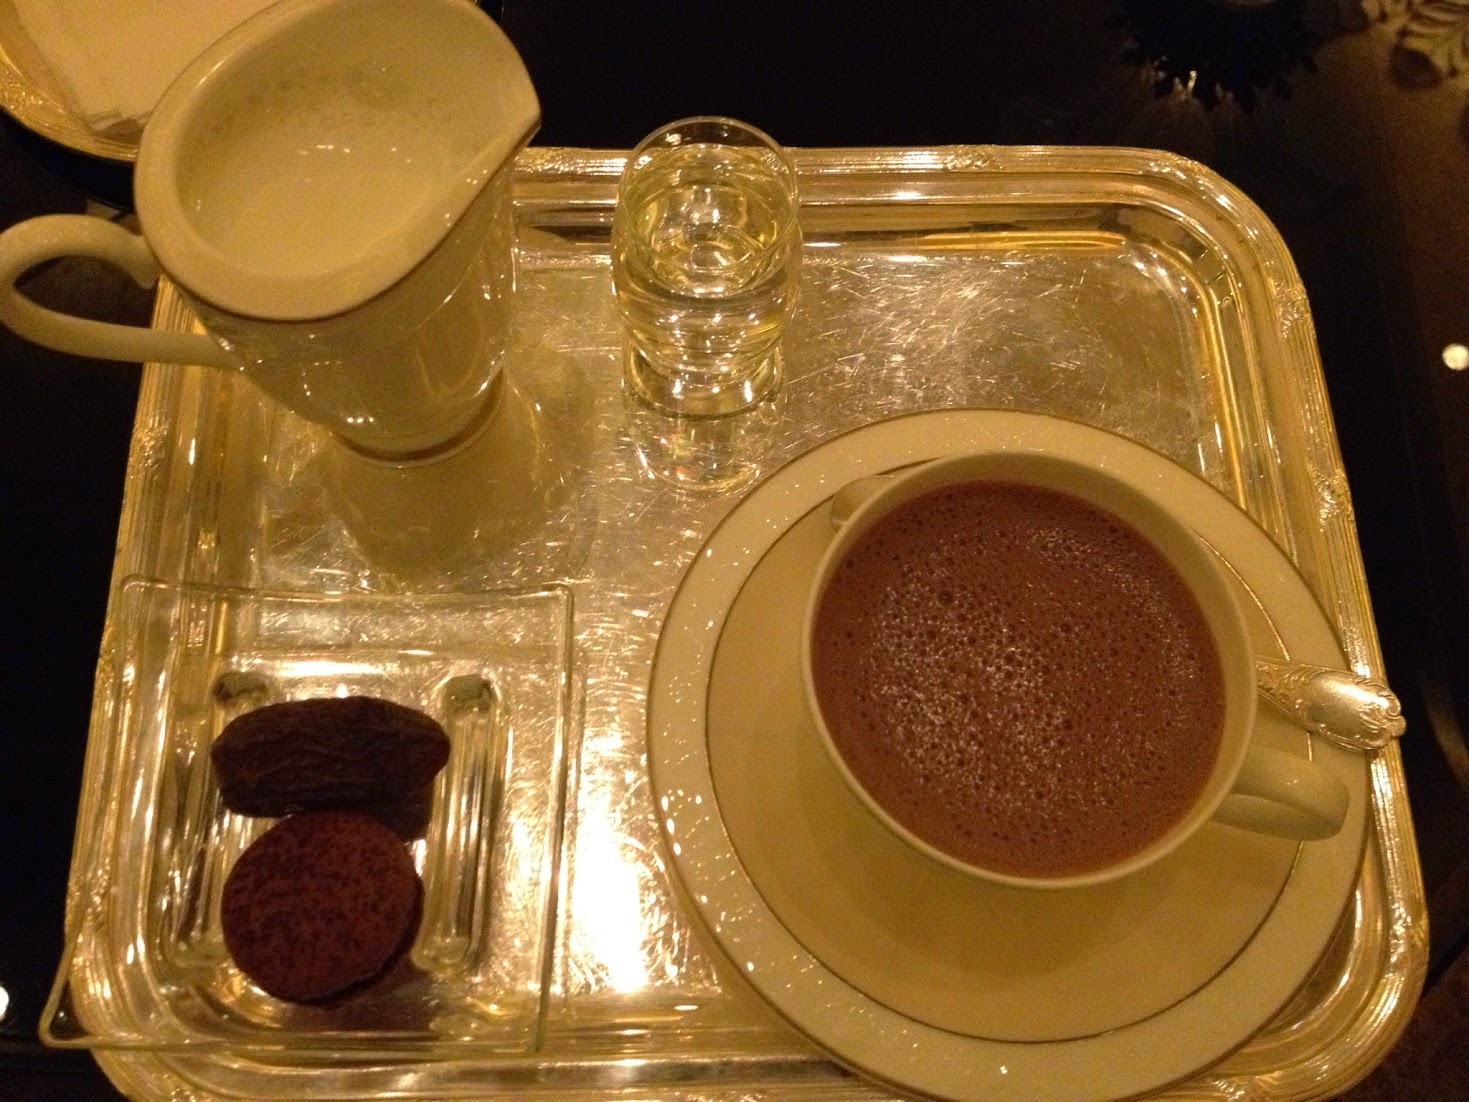 Hot chocolate, Emirates Palace, Abu Dhabi, UAE